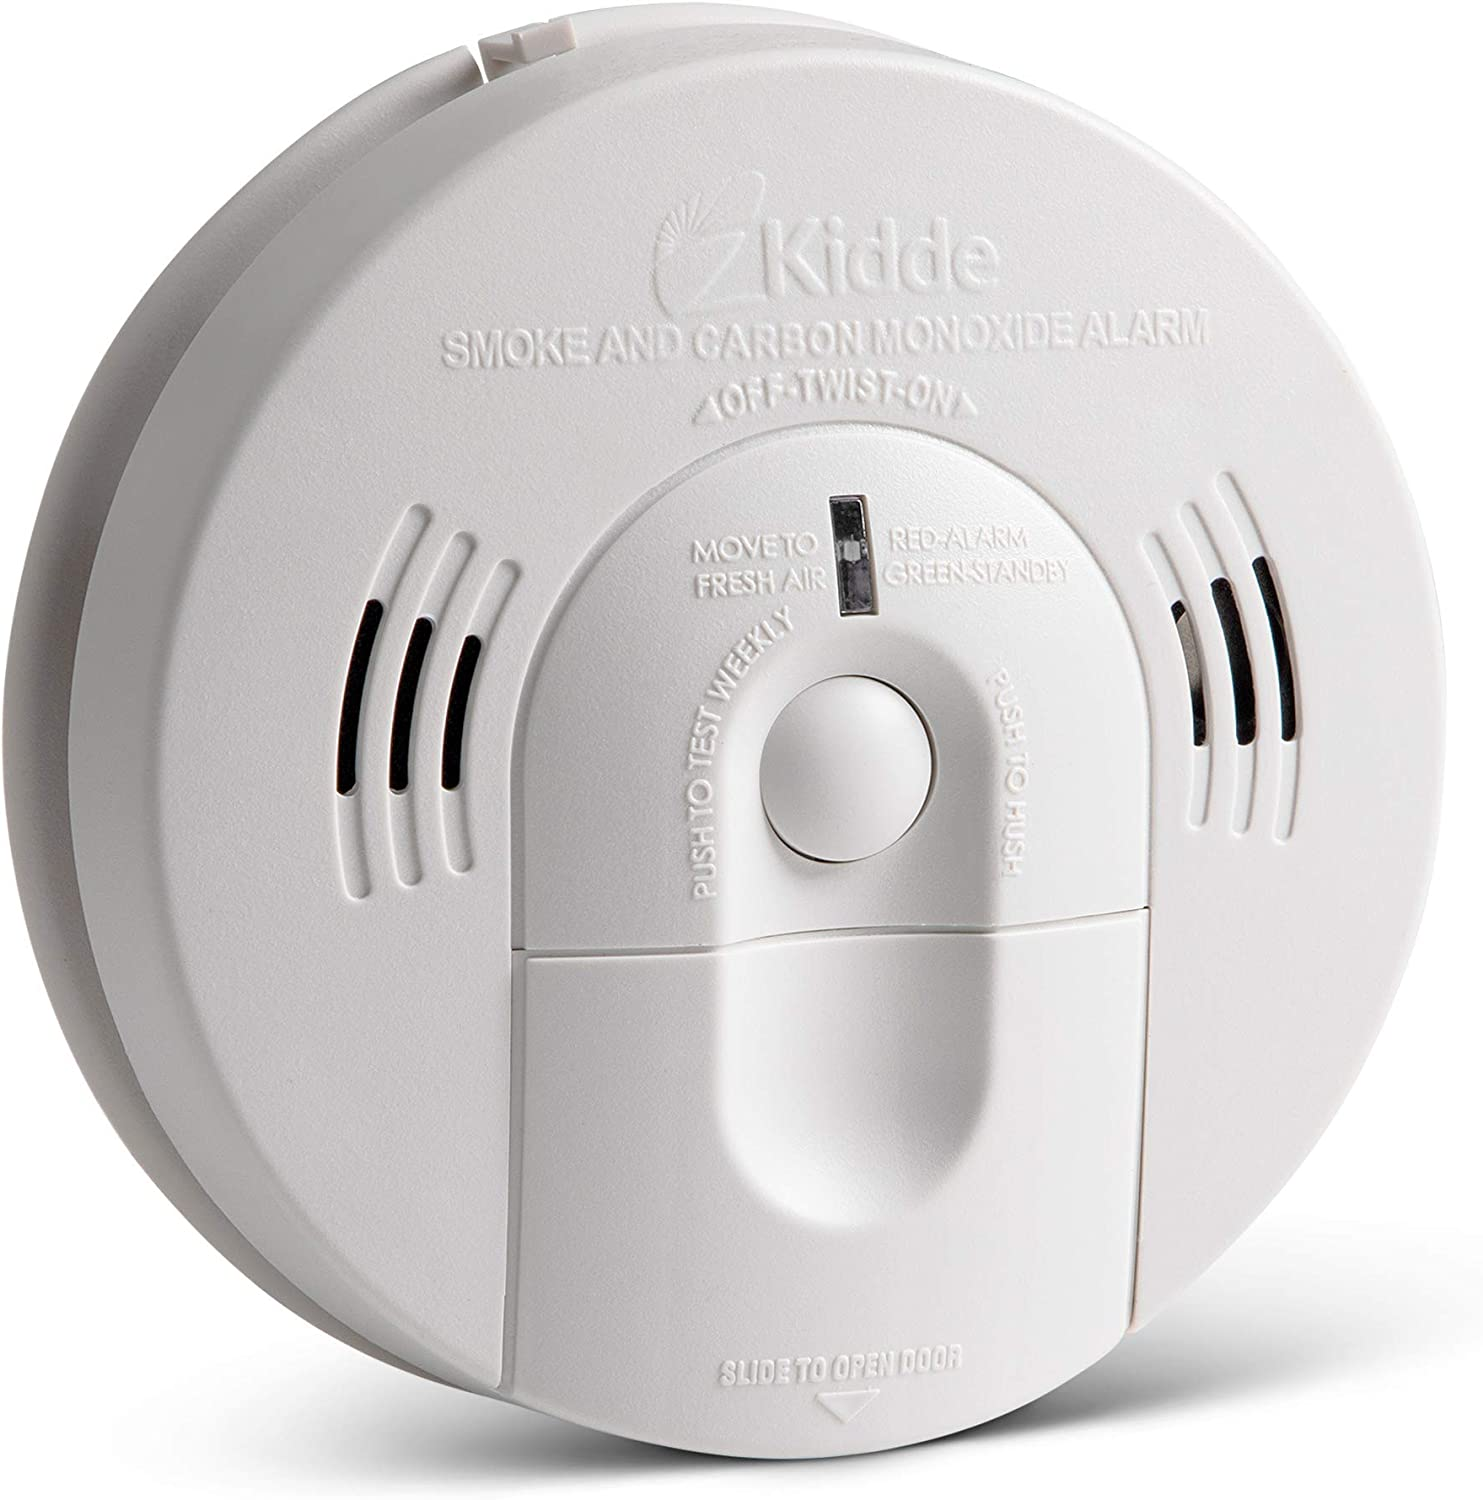 Kidde 21026043 Battery-Operated Not Hardwired Combination Smoke//Carbon Monoxide Alarm with Voice Warning KN-COSM-BA